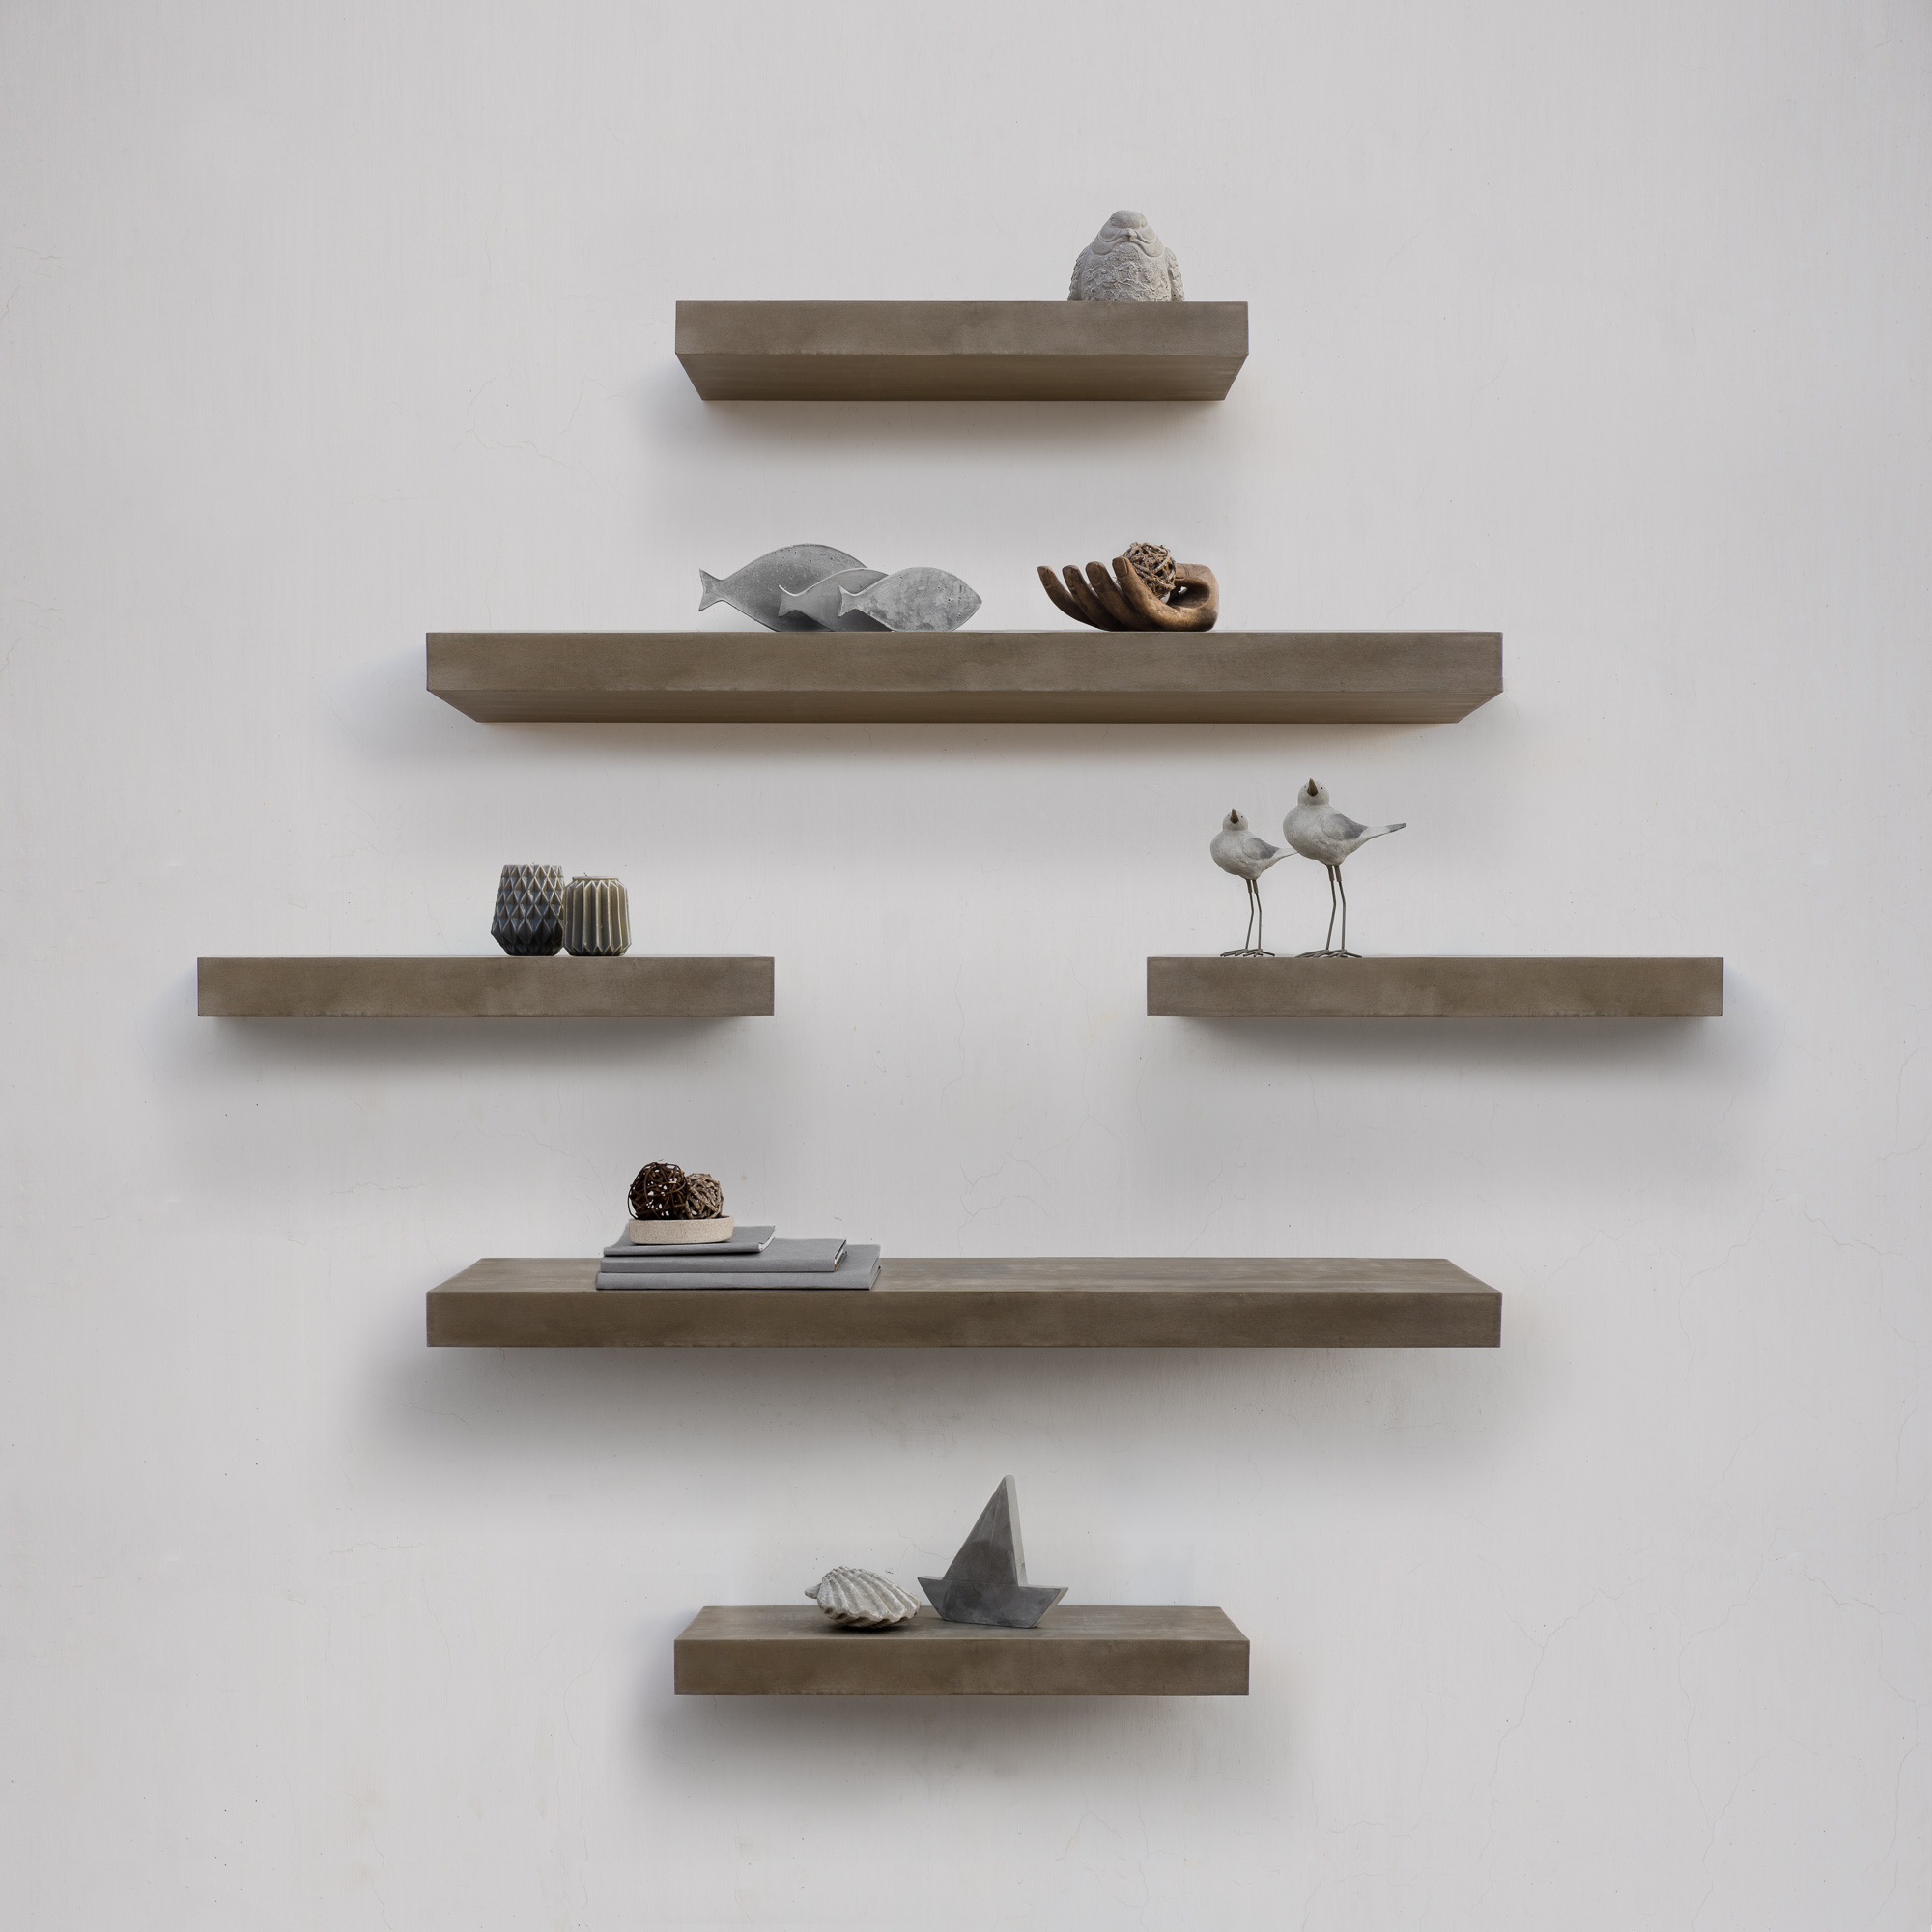 Concrete Island Floating Shelves